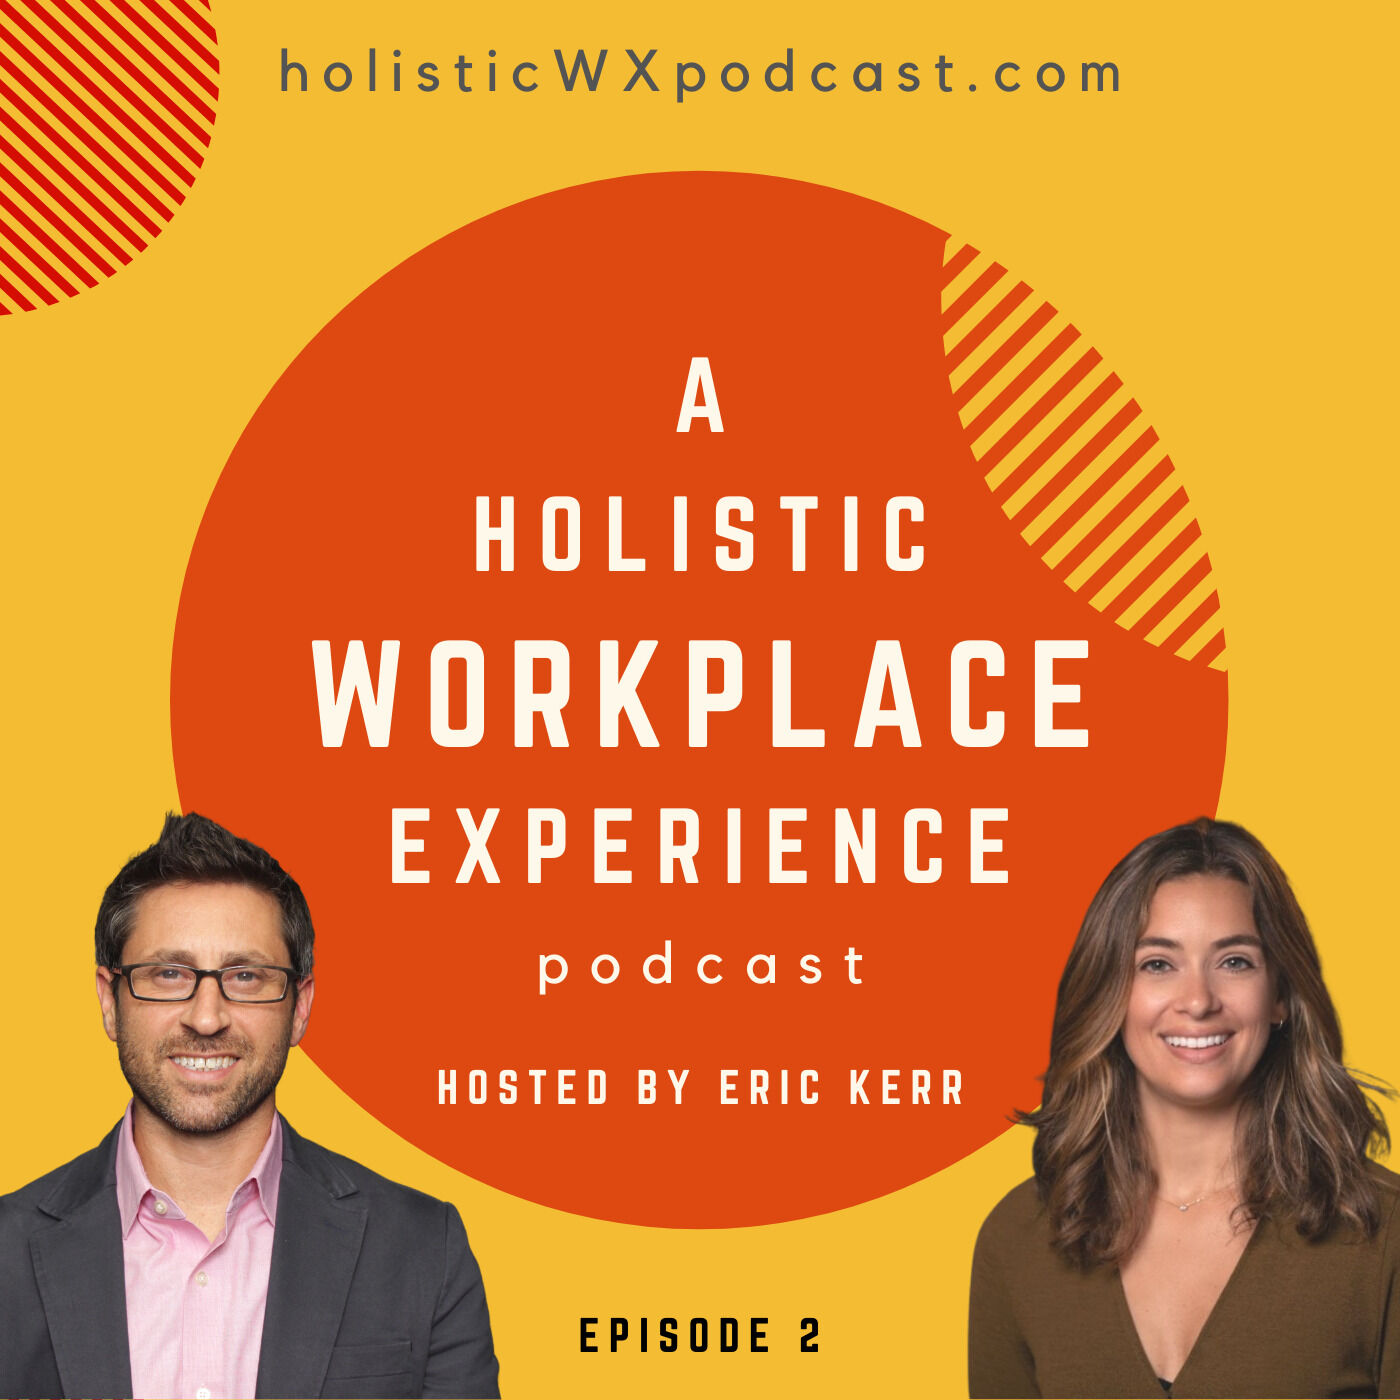 2. A Holistic Workplace (Guests: Christopher Good and Corinne Murray)